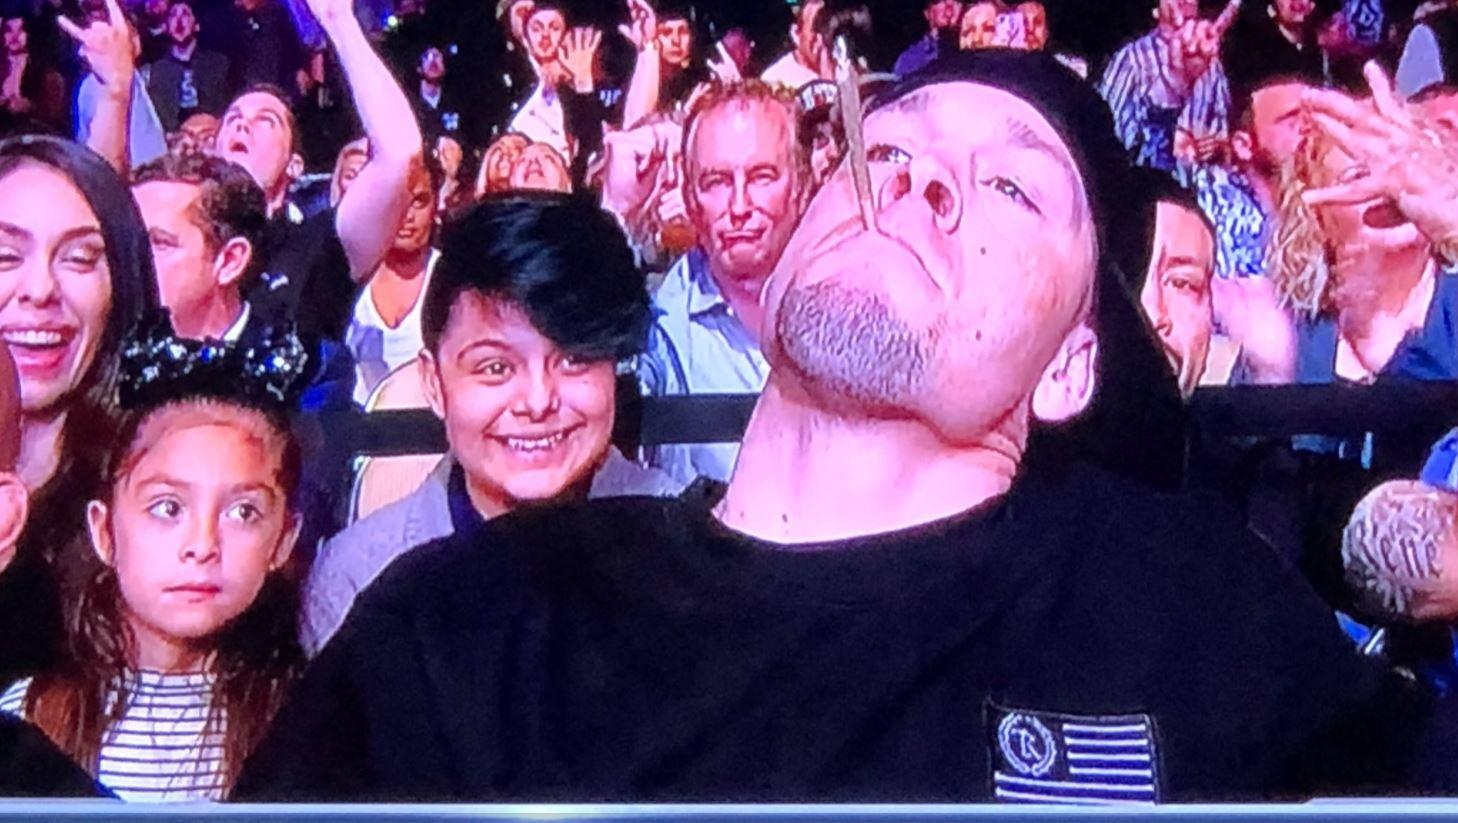 The camera quickly panned away from Diaz, so it is now known whether he actually smoked it